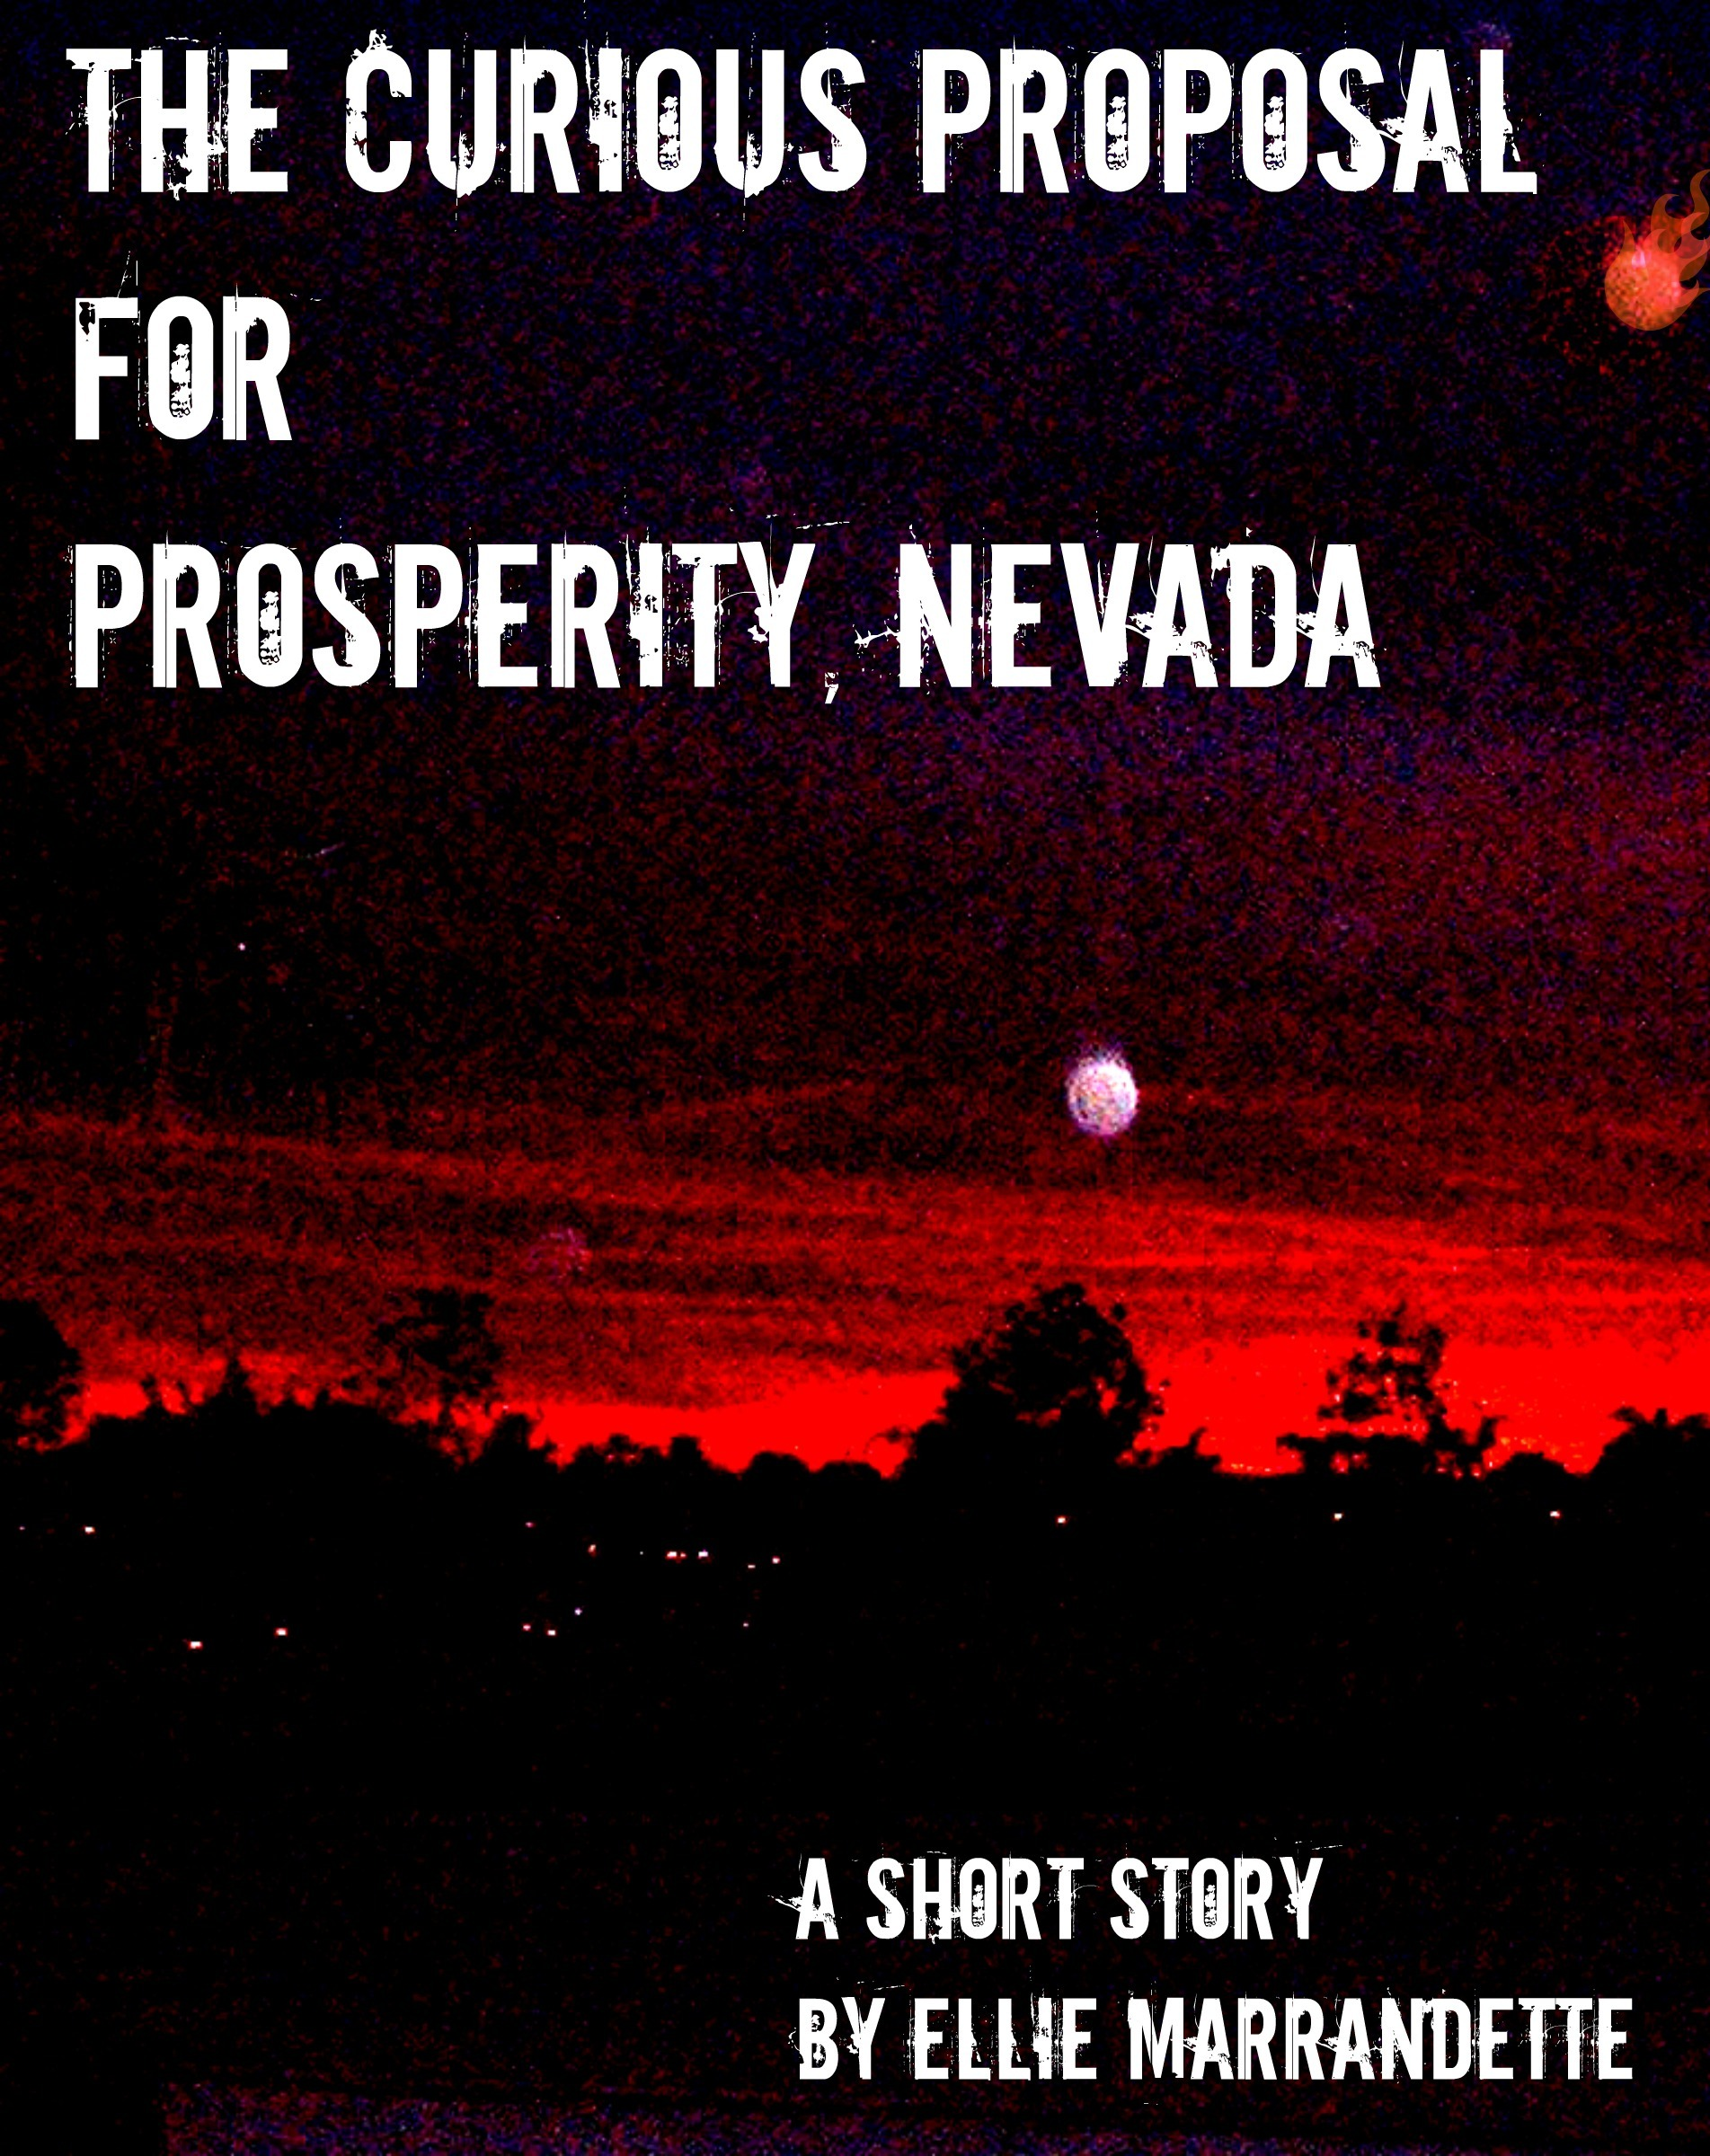 The Curious Proposal for Prosperity, Nevada